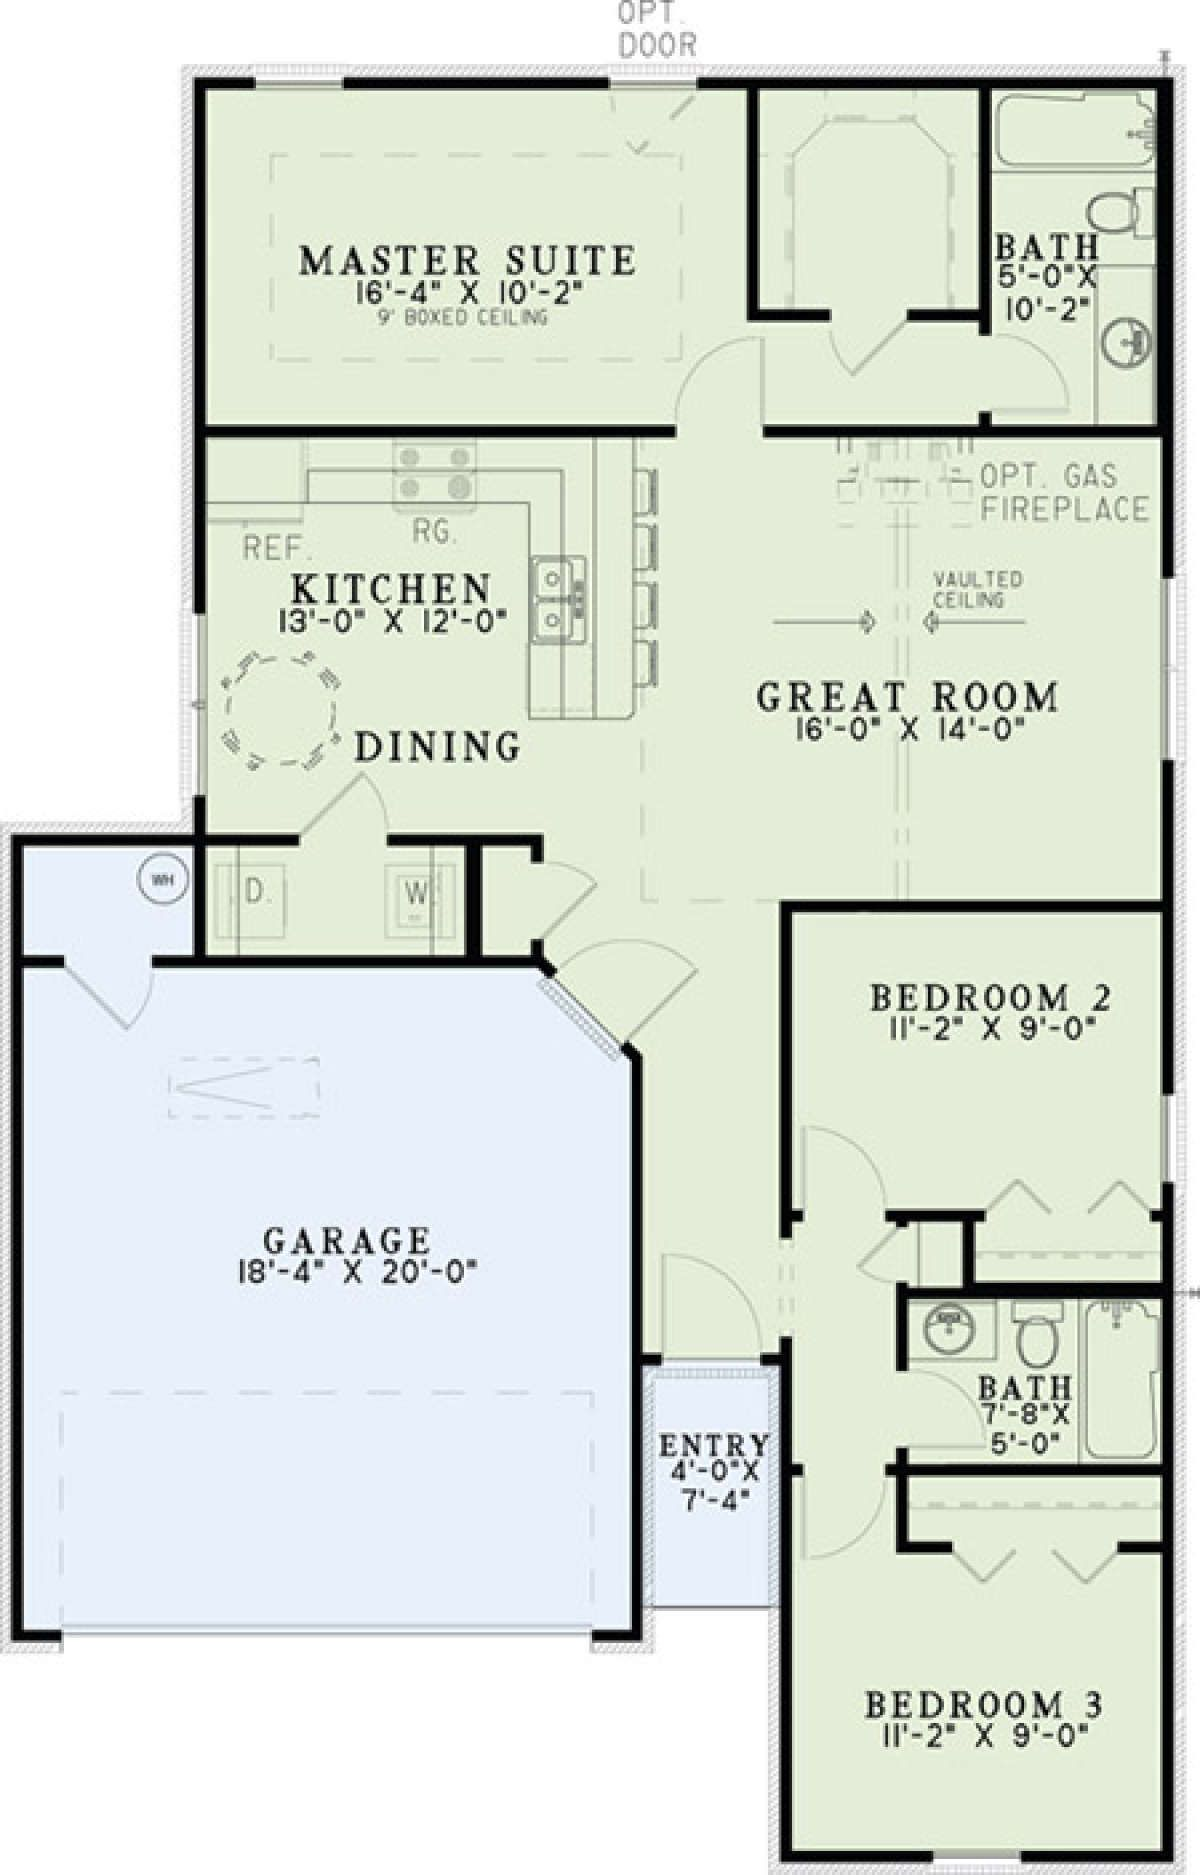 House Plan 110 01005 Narrow Lot Plan 1 169 Square Feet 3 Bedrooms 2 Bathrooms Cottage Style House Plans Pole Barn House Plans House Floor Plans